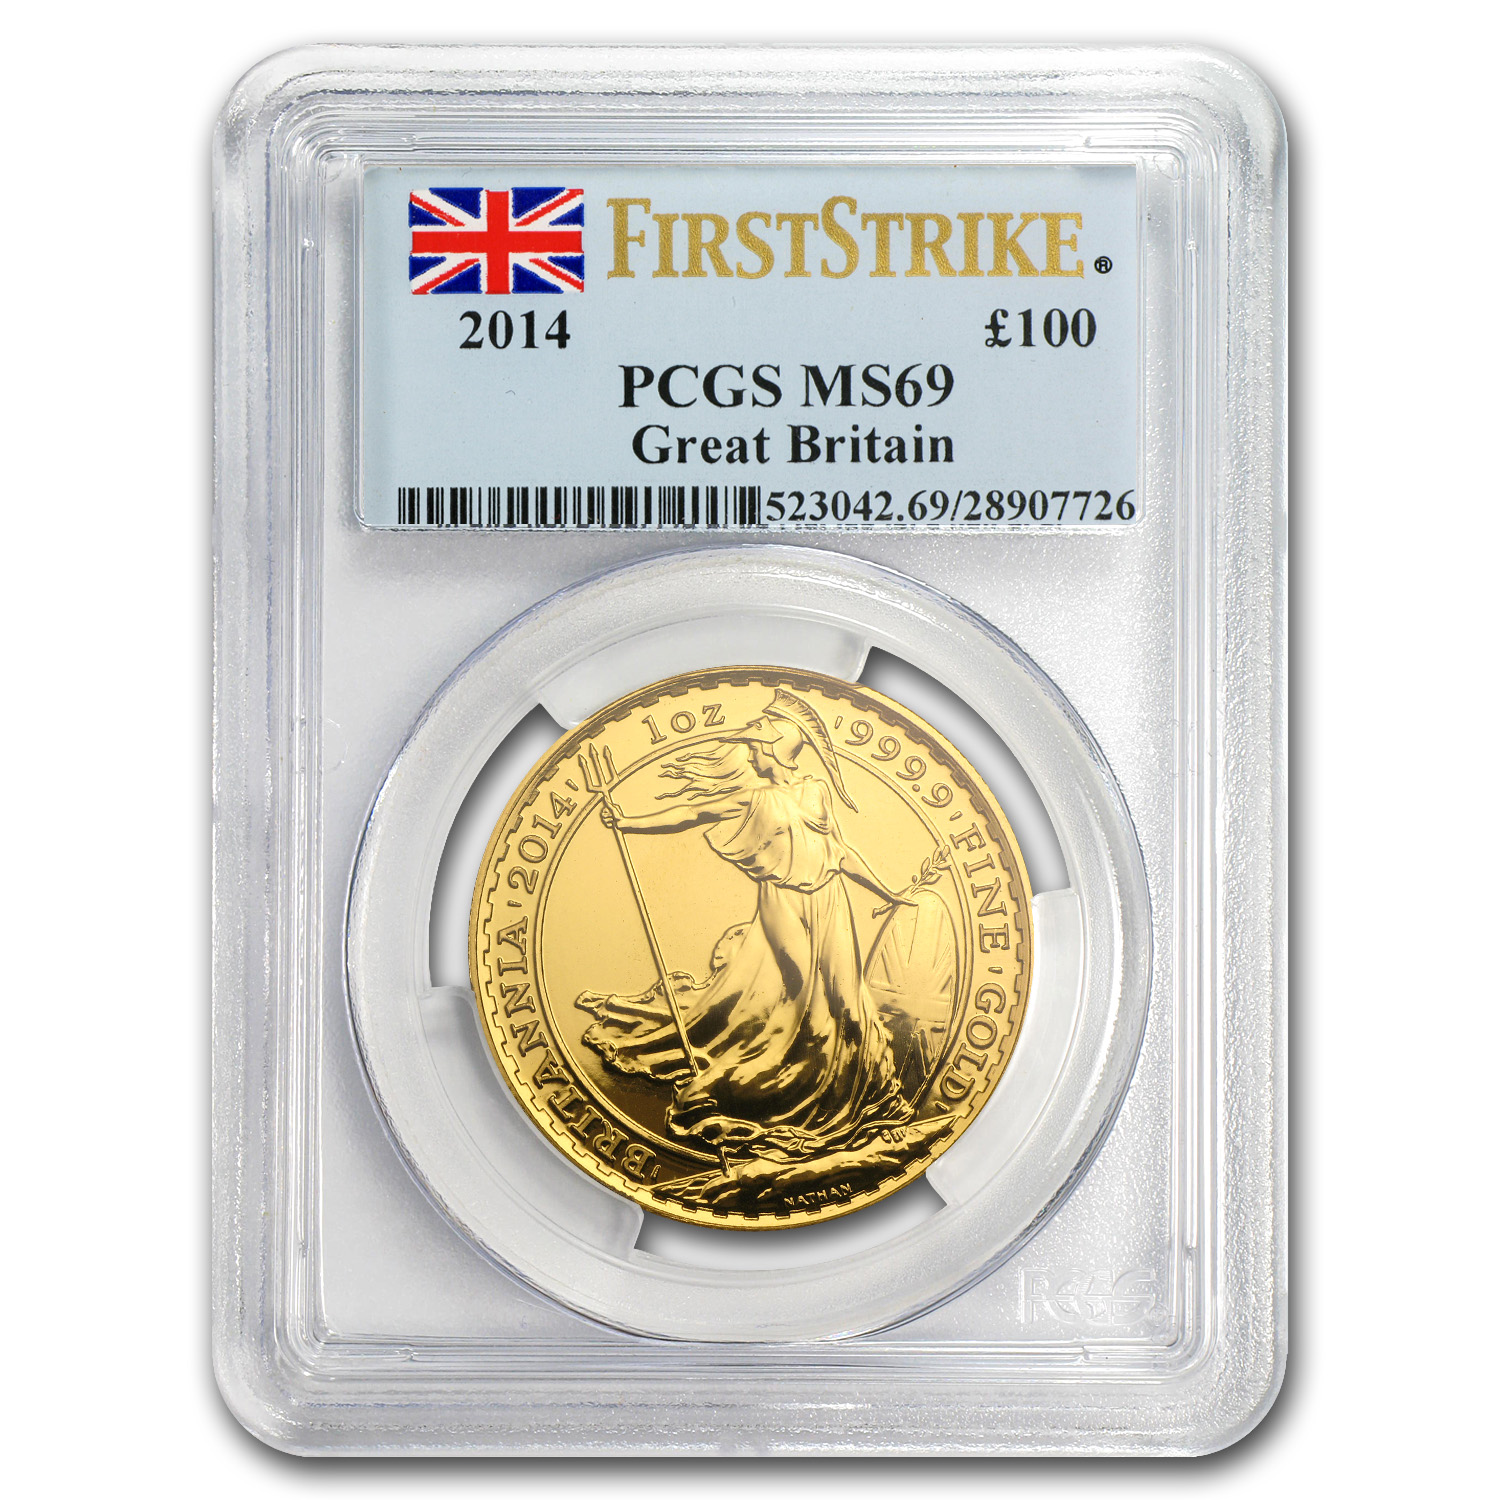 2014 Great Britain 1 oz Gold Britannia MS-69 PCGS (First Strike)